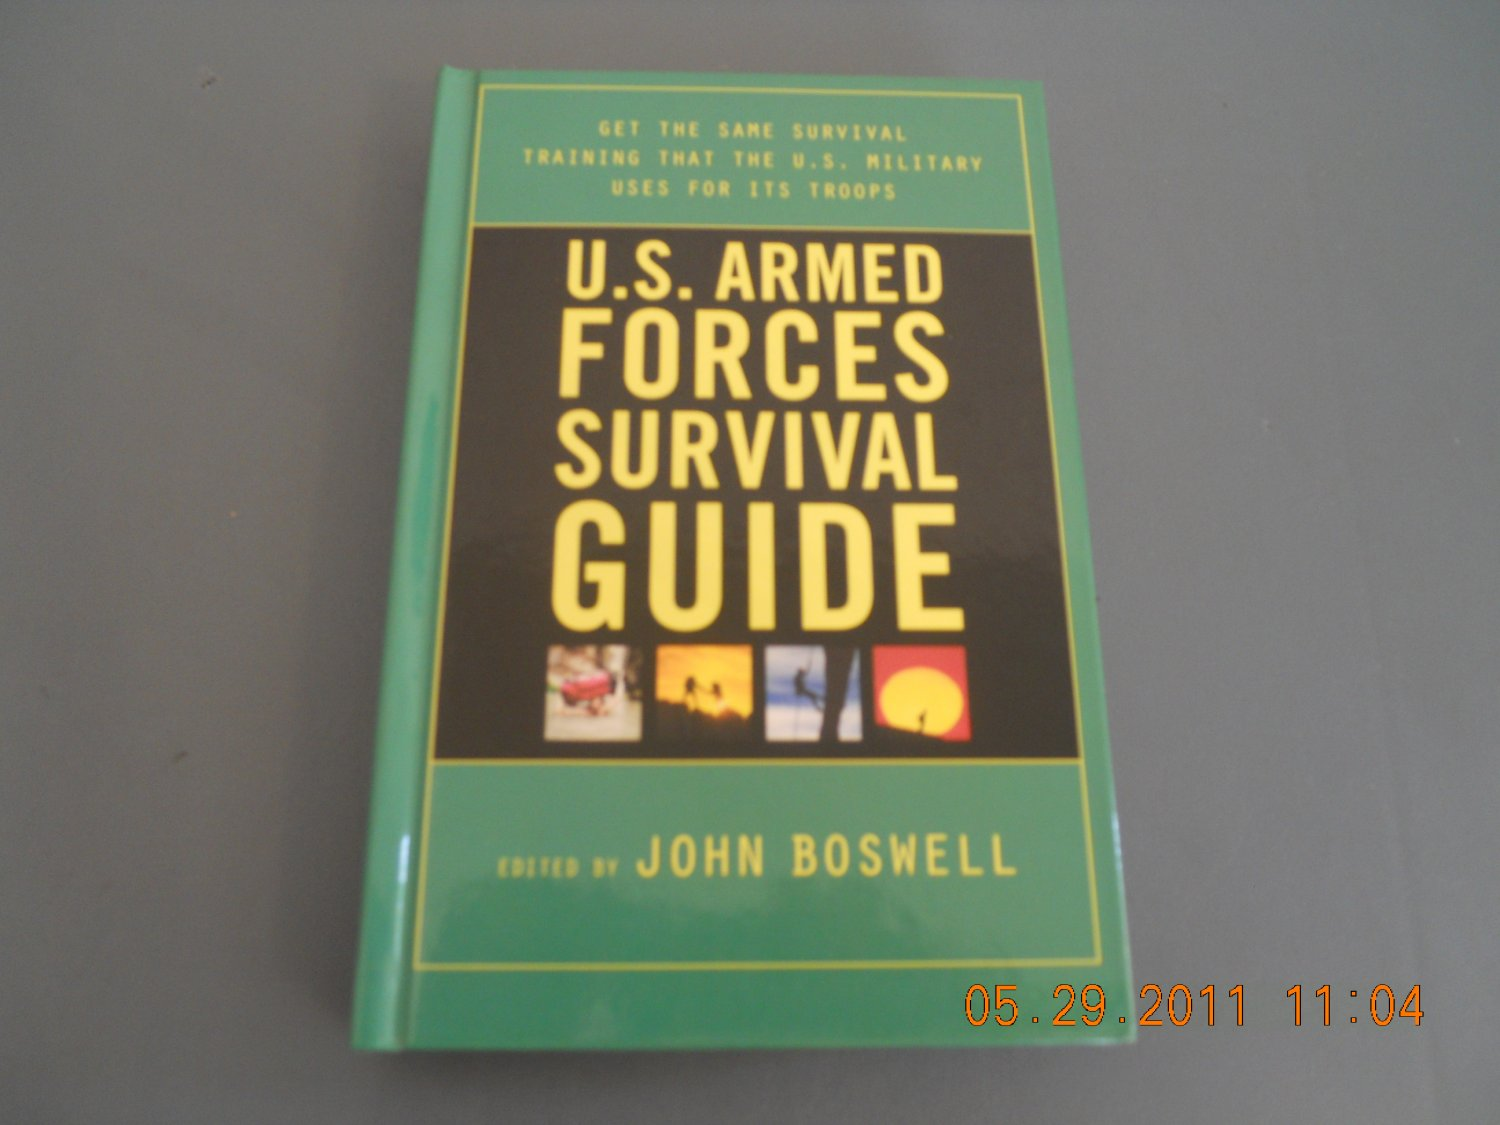 U.S. Armed Forces Survival Guide hardcover